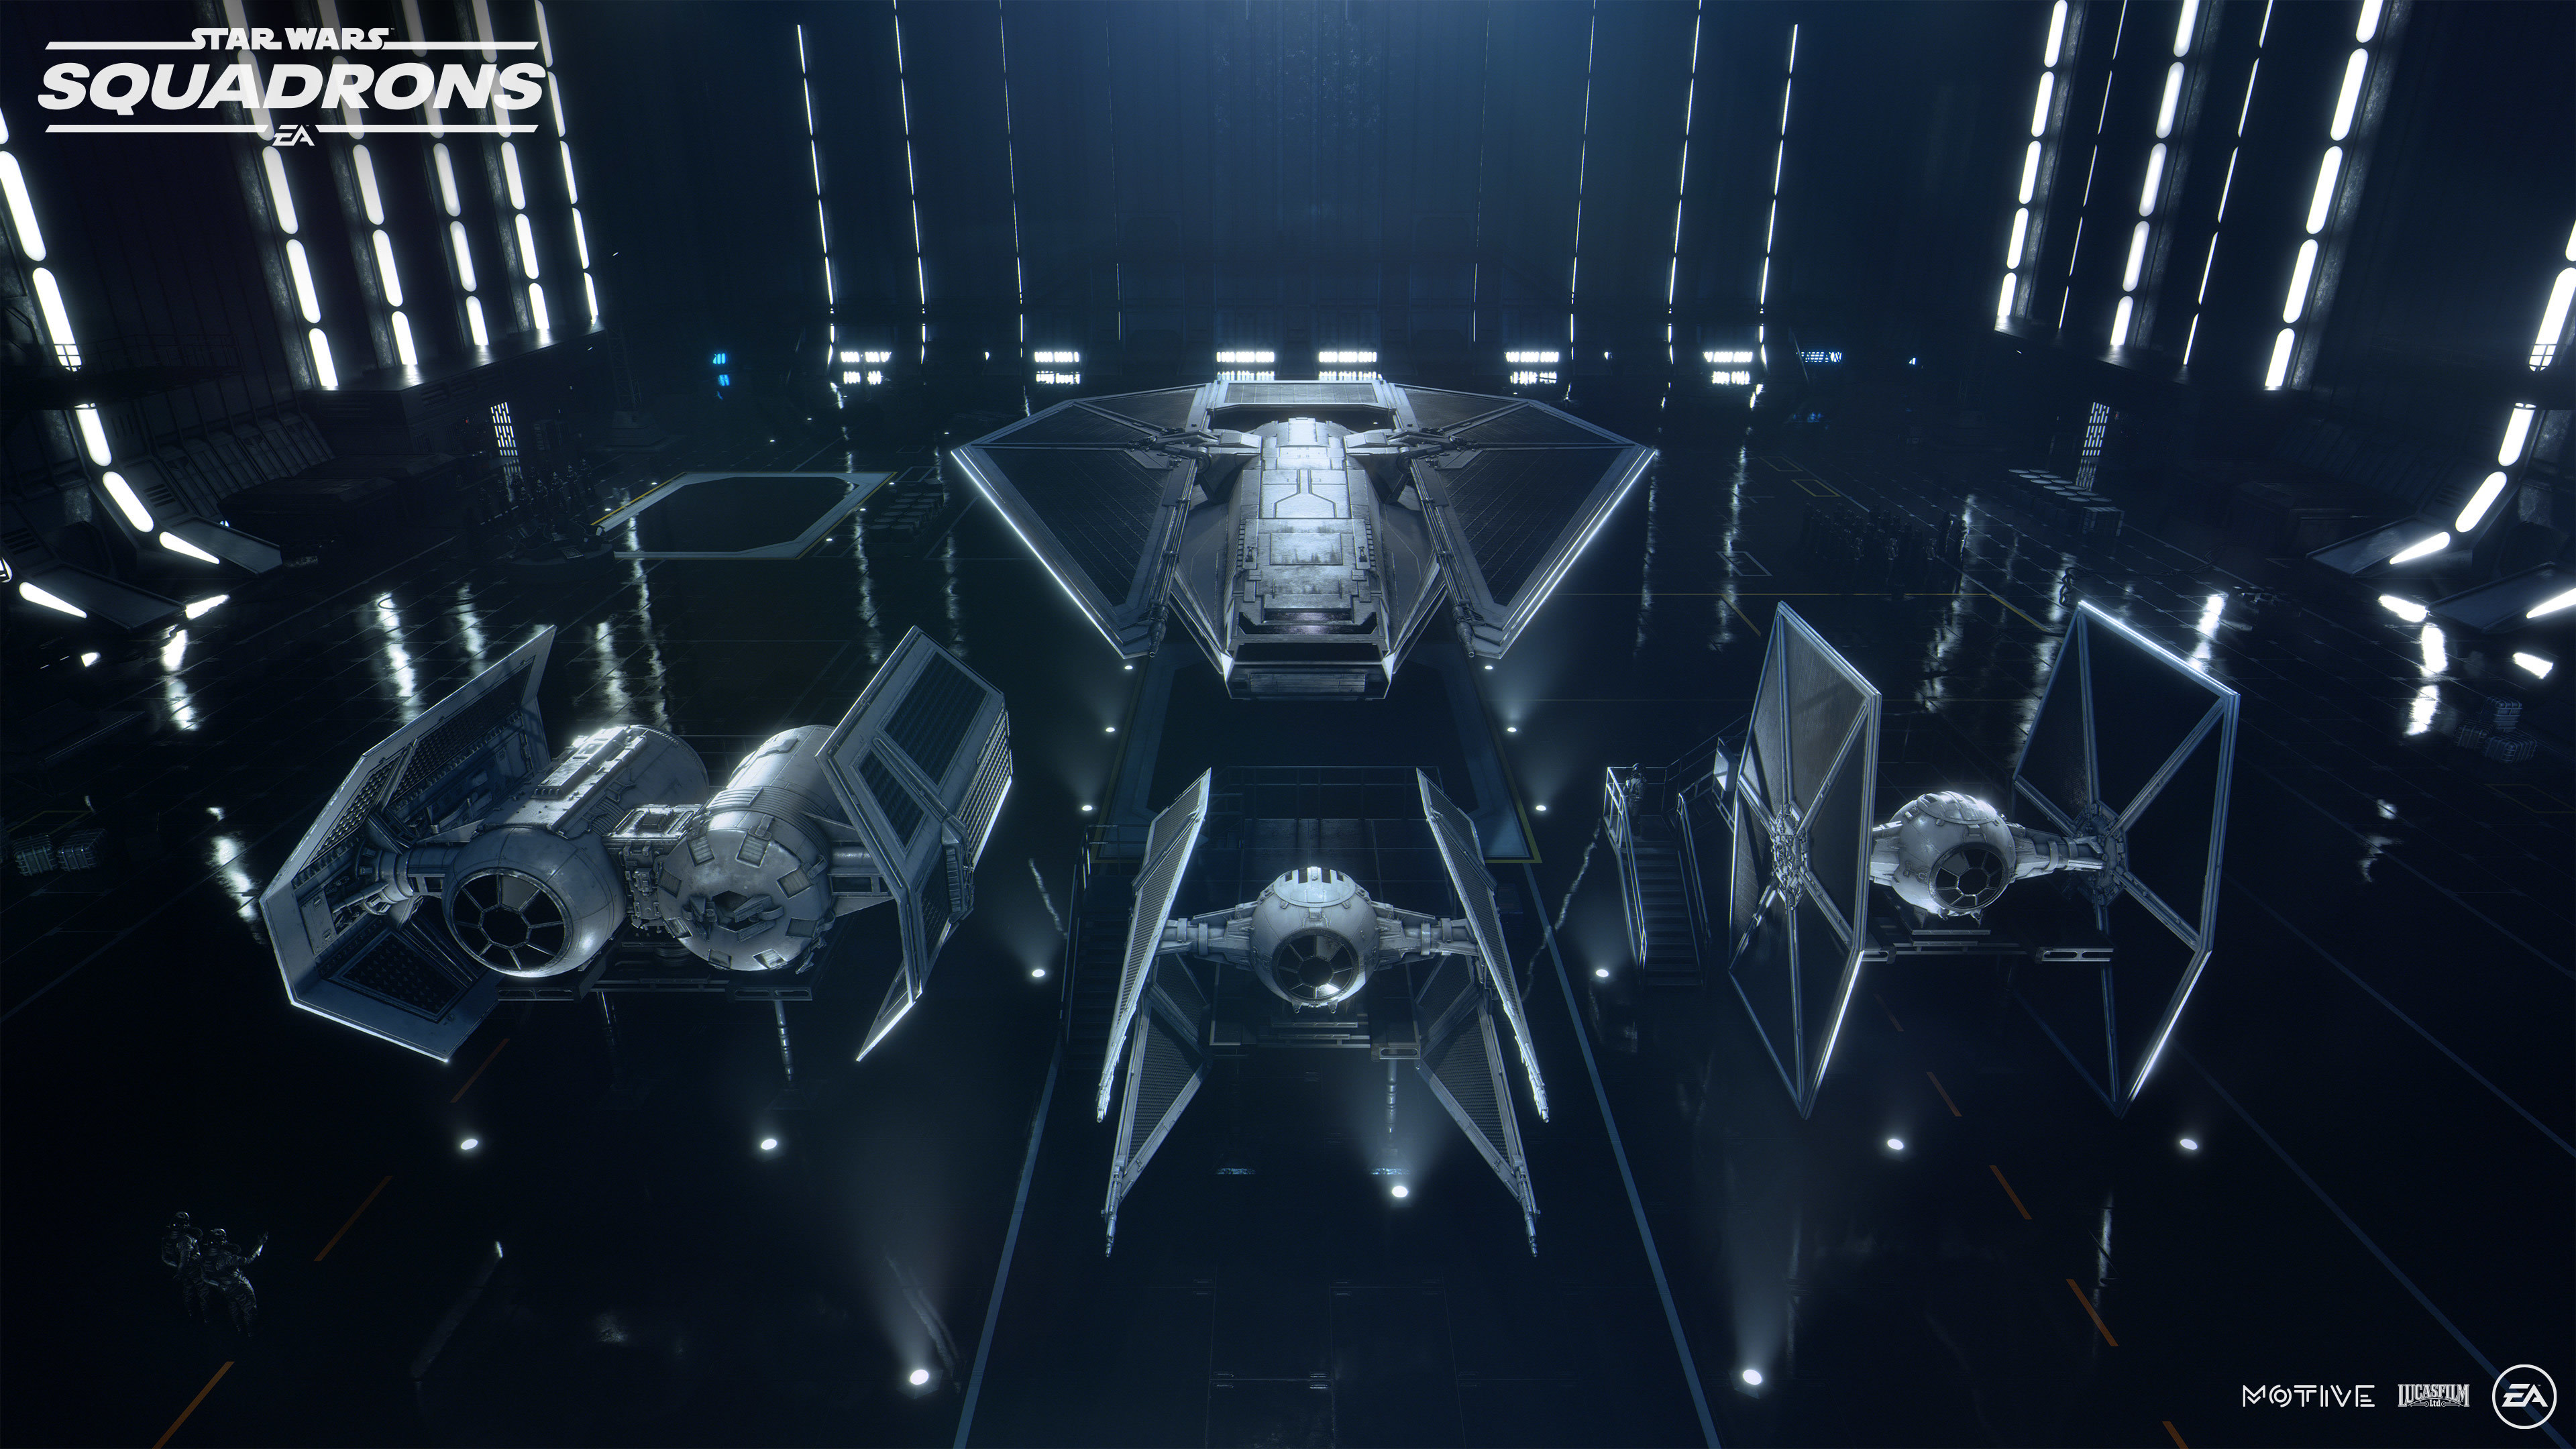 Star Wars Squadrons Wallpaper 4k Hanger Pc Games Playstation 4 Xbox One Games 1878